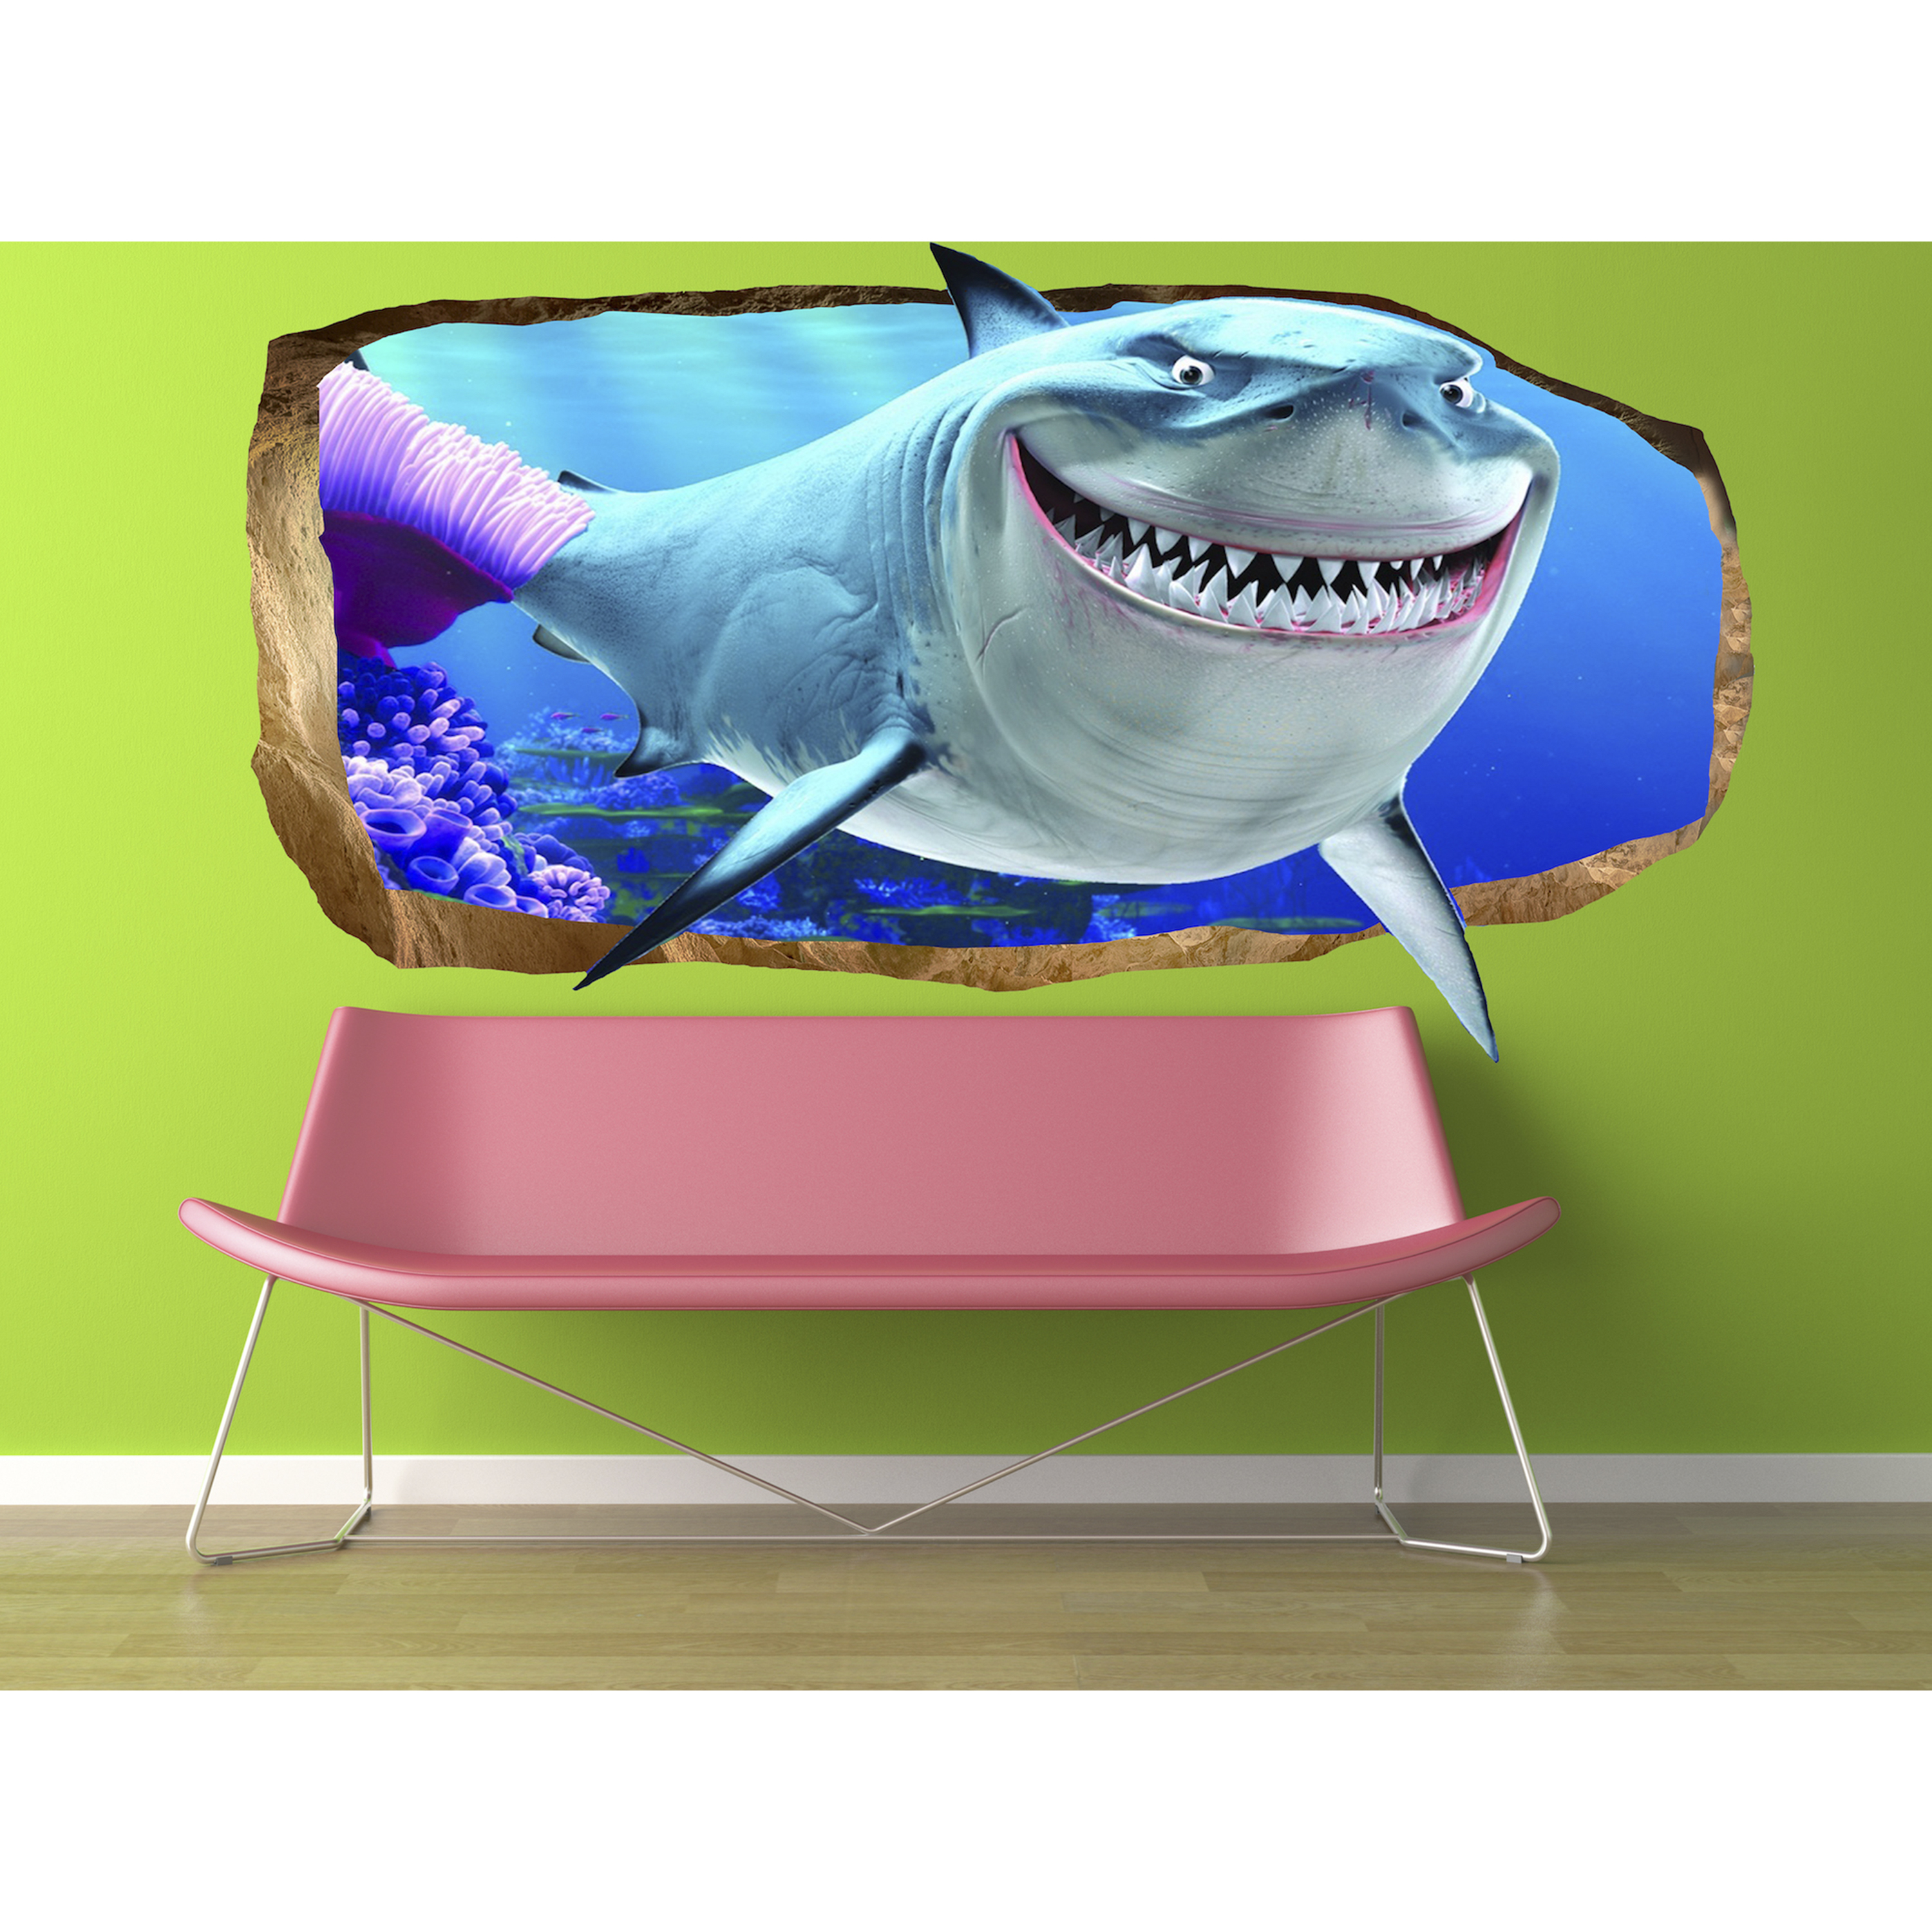 Startonight 3D Mural Wall Art Photo Decor Pink Shark Amazing Dual View Surprise Wall Mural Wallpaper for Bedroom Kids Wall Art Gift Large 47.24 ������ By 86.61 ������